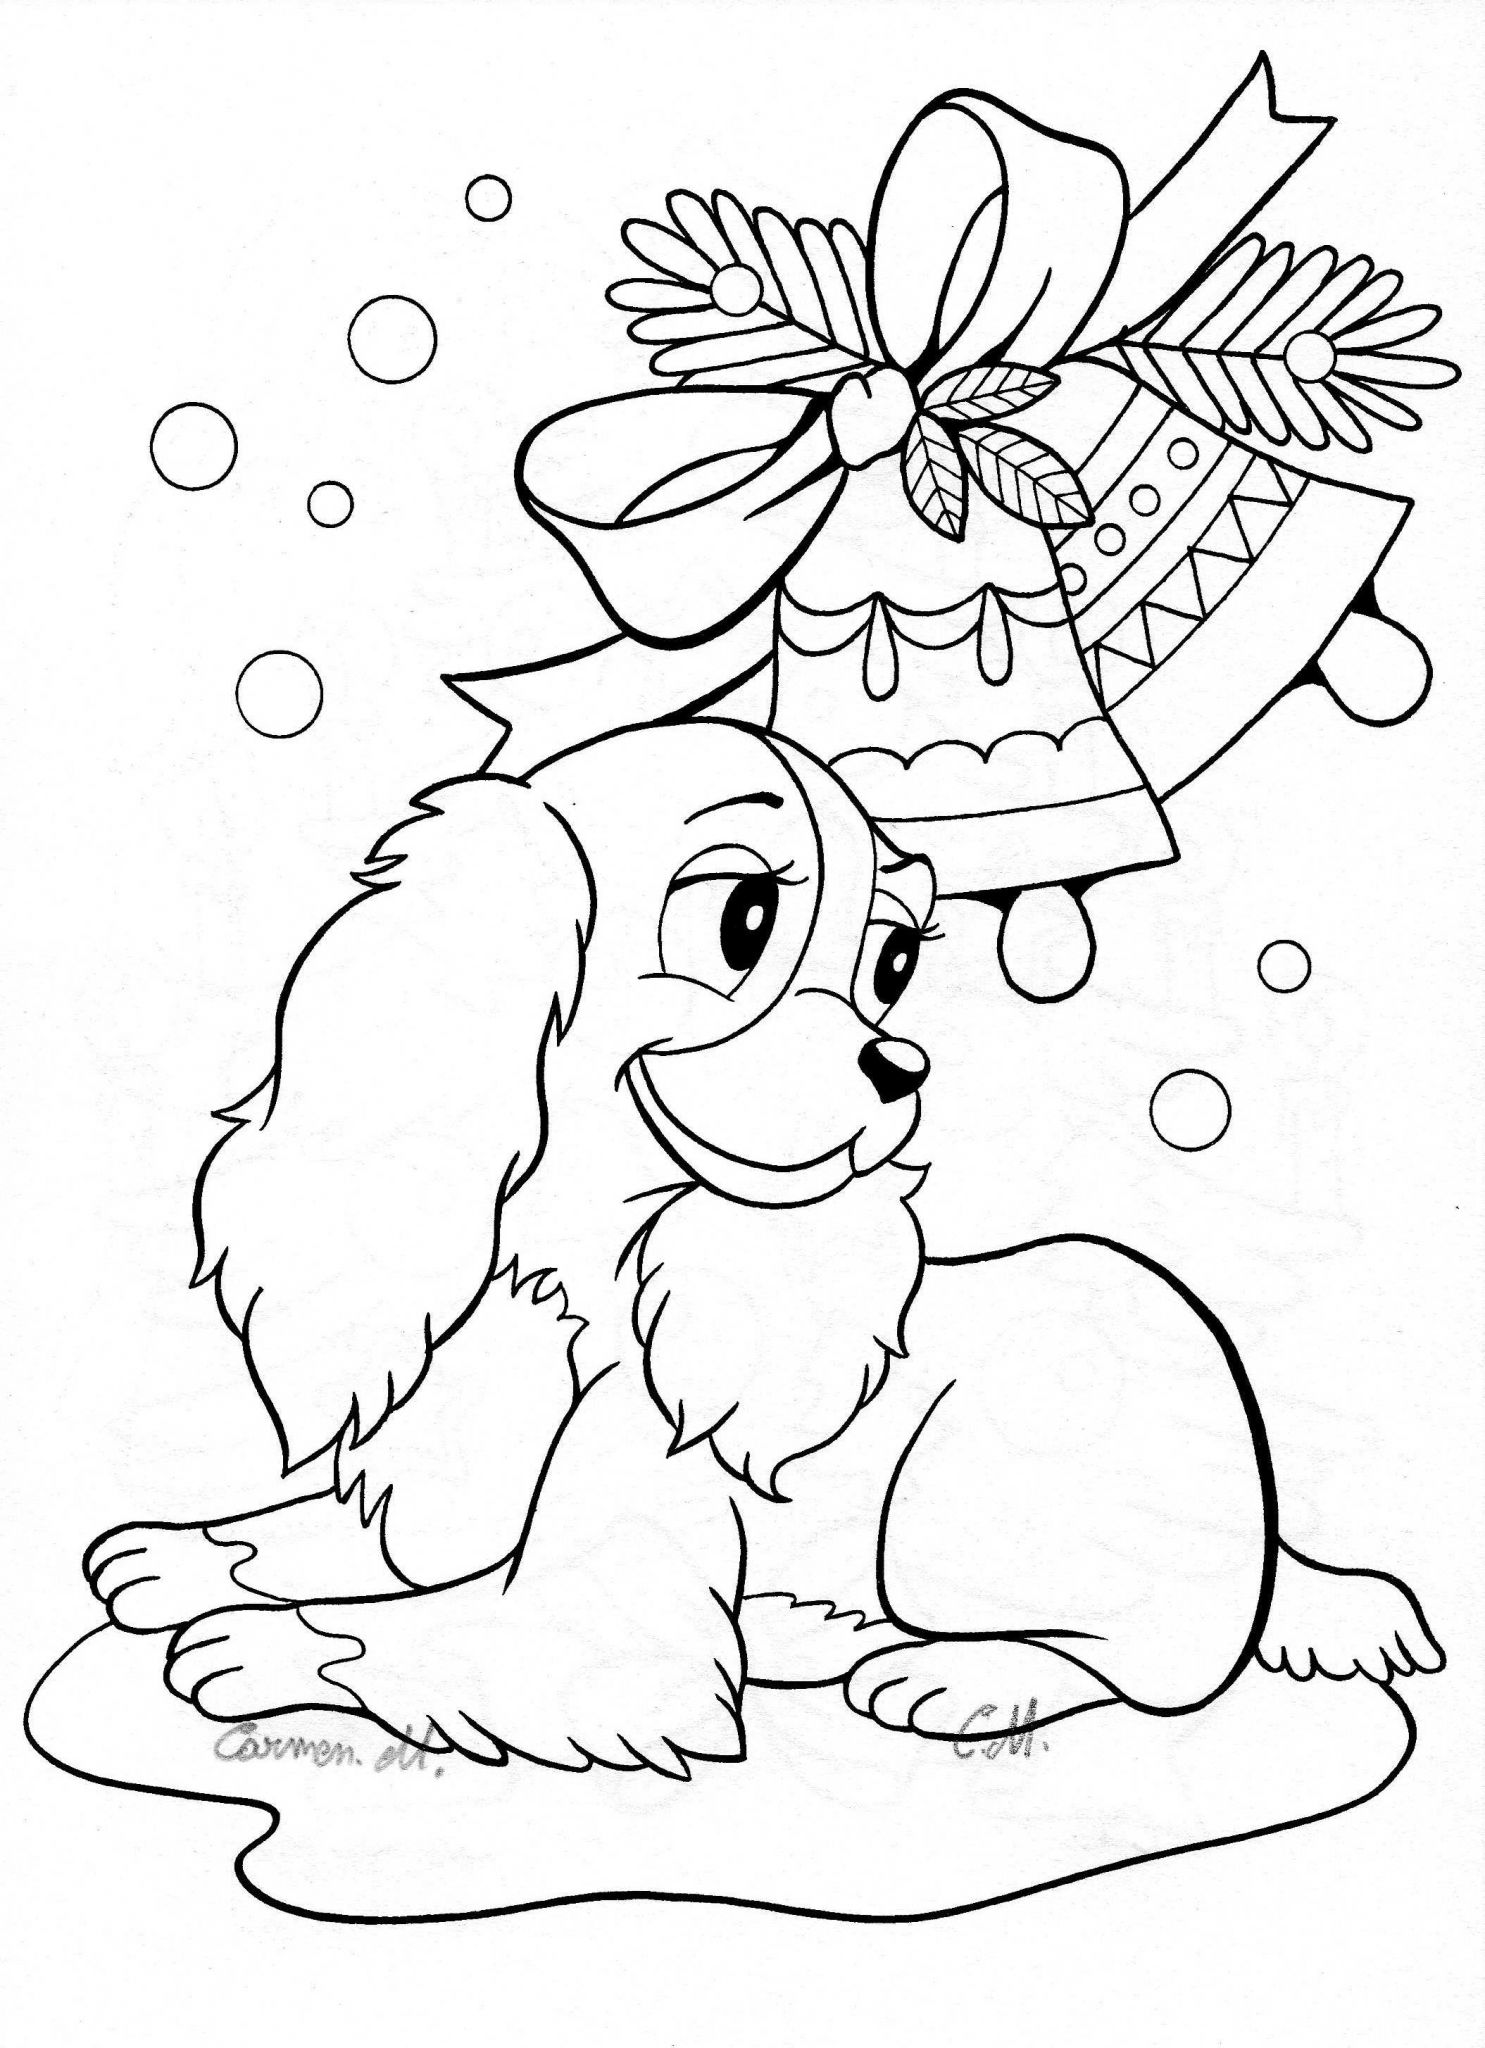 Coloring Worksheets for Preschool with Printable Od Dog Coloring Pages Free Colouring Pages – Fun Time